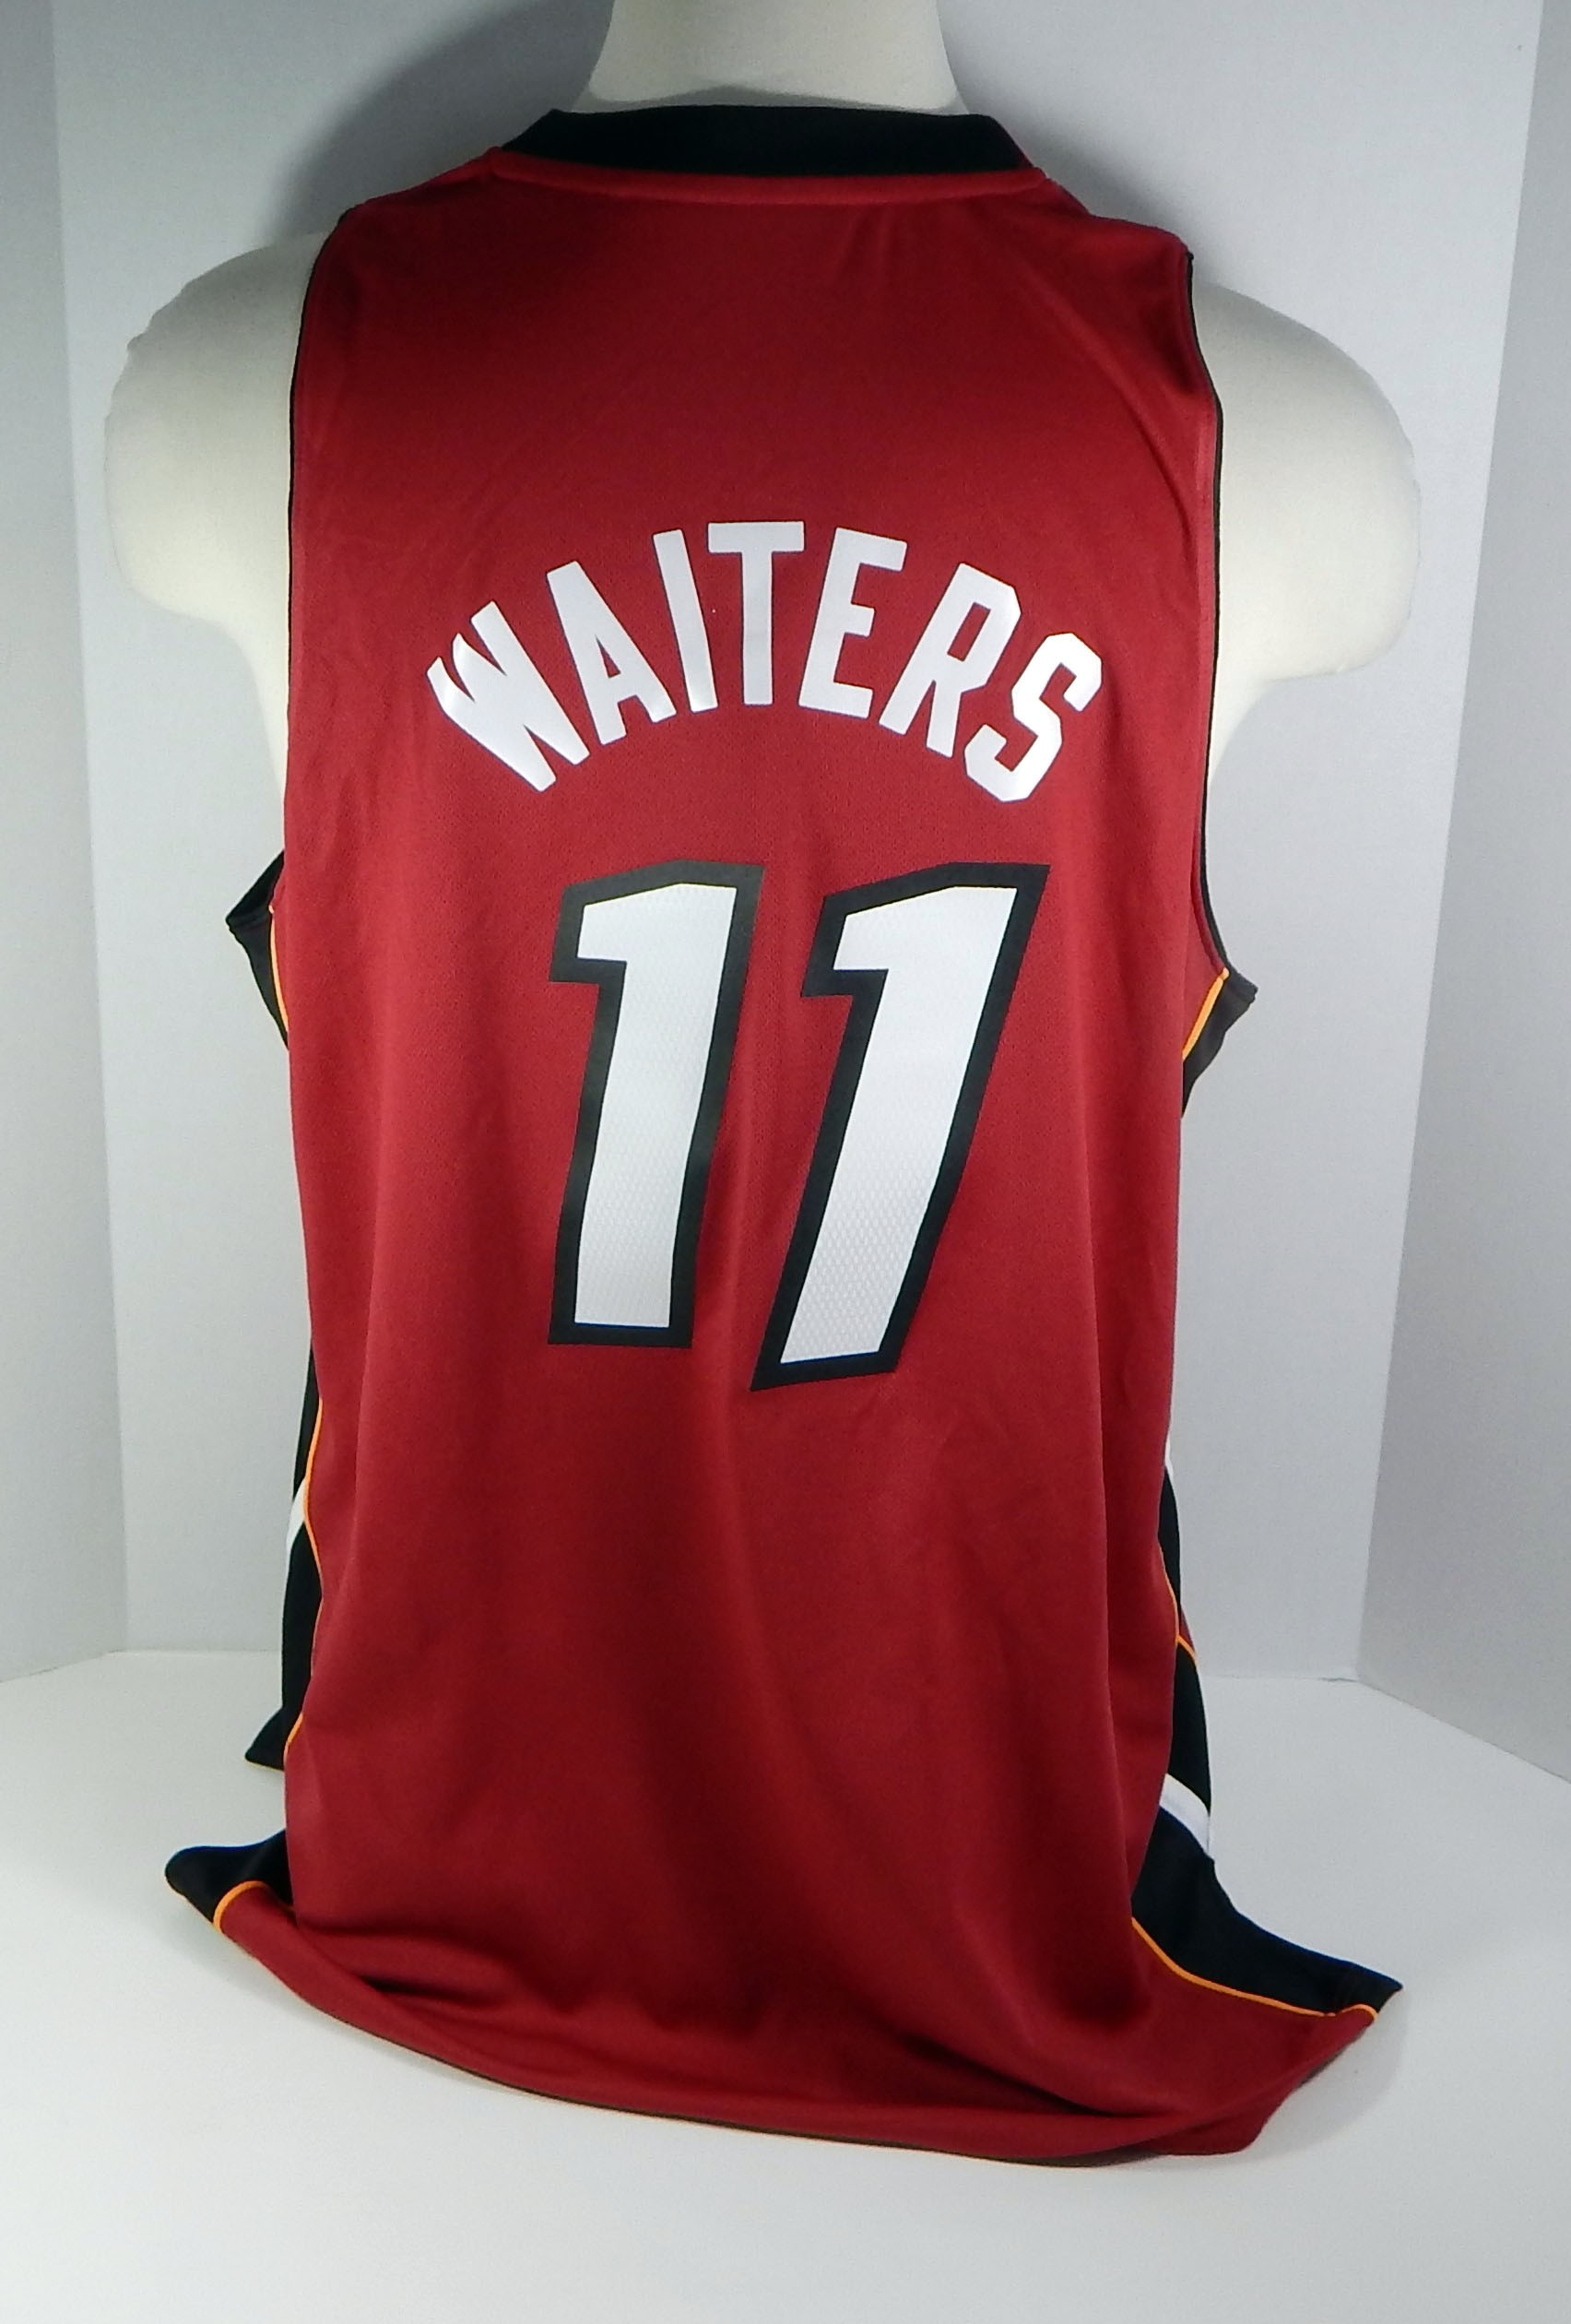 071bf24ef Details about Miami Heat Dion Waiters  11 Replica Red Jersey